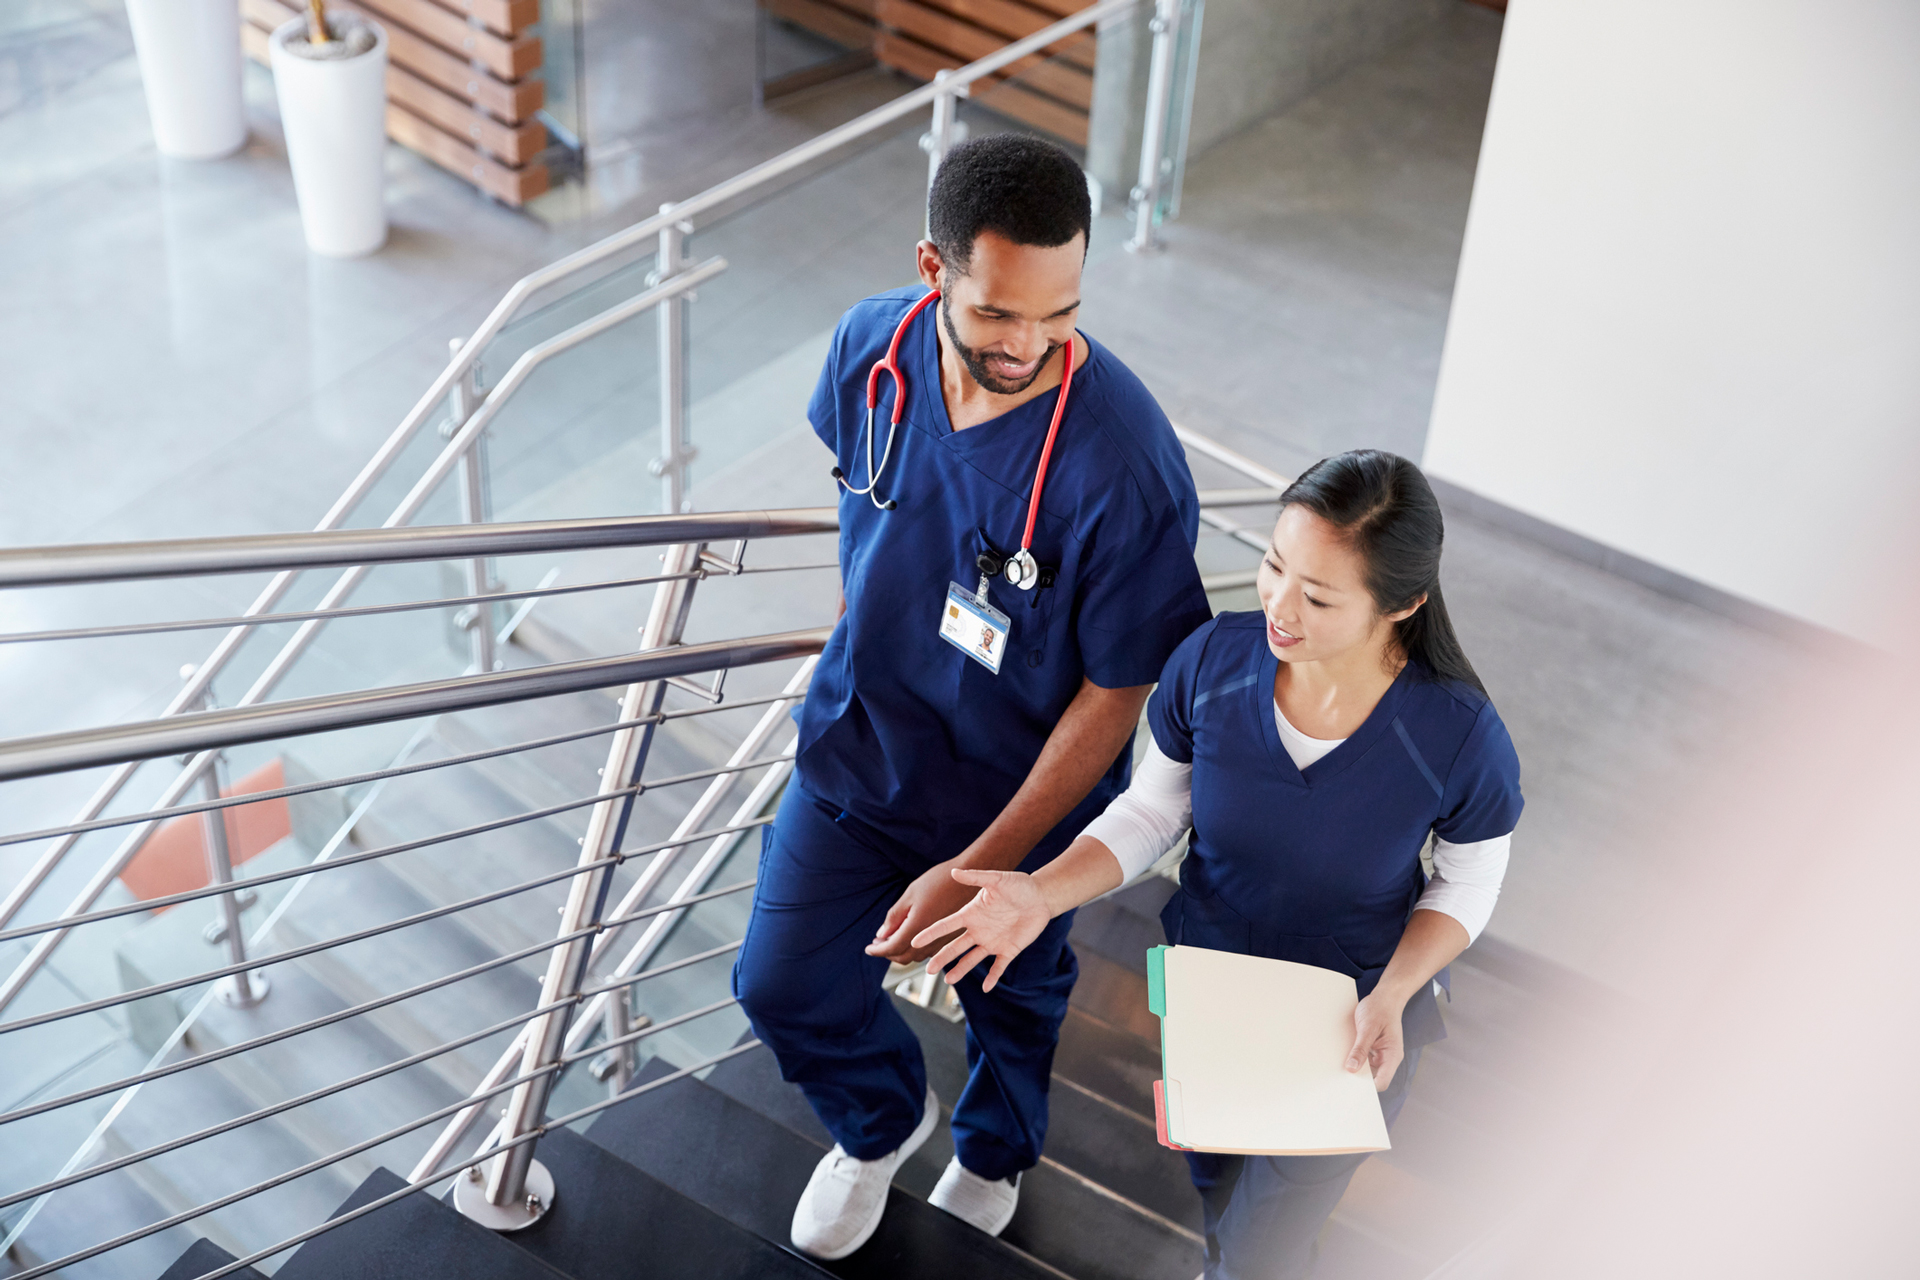 Two healthcare professionals walking up stairs